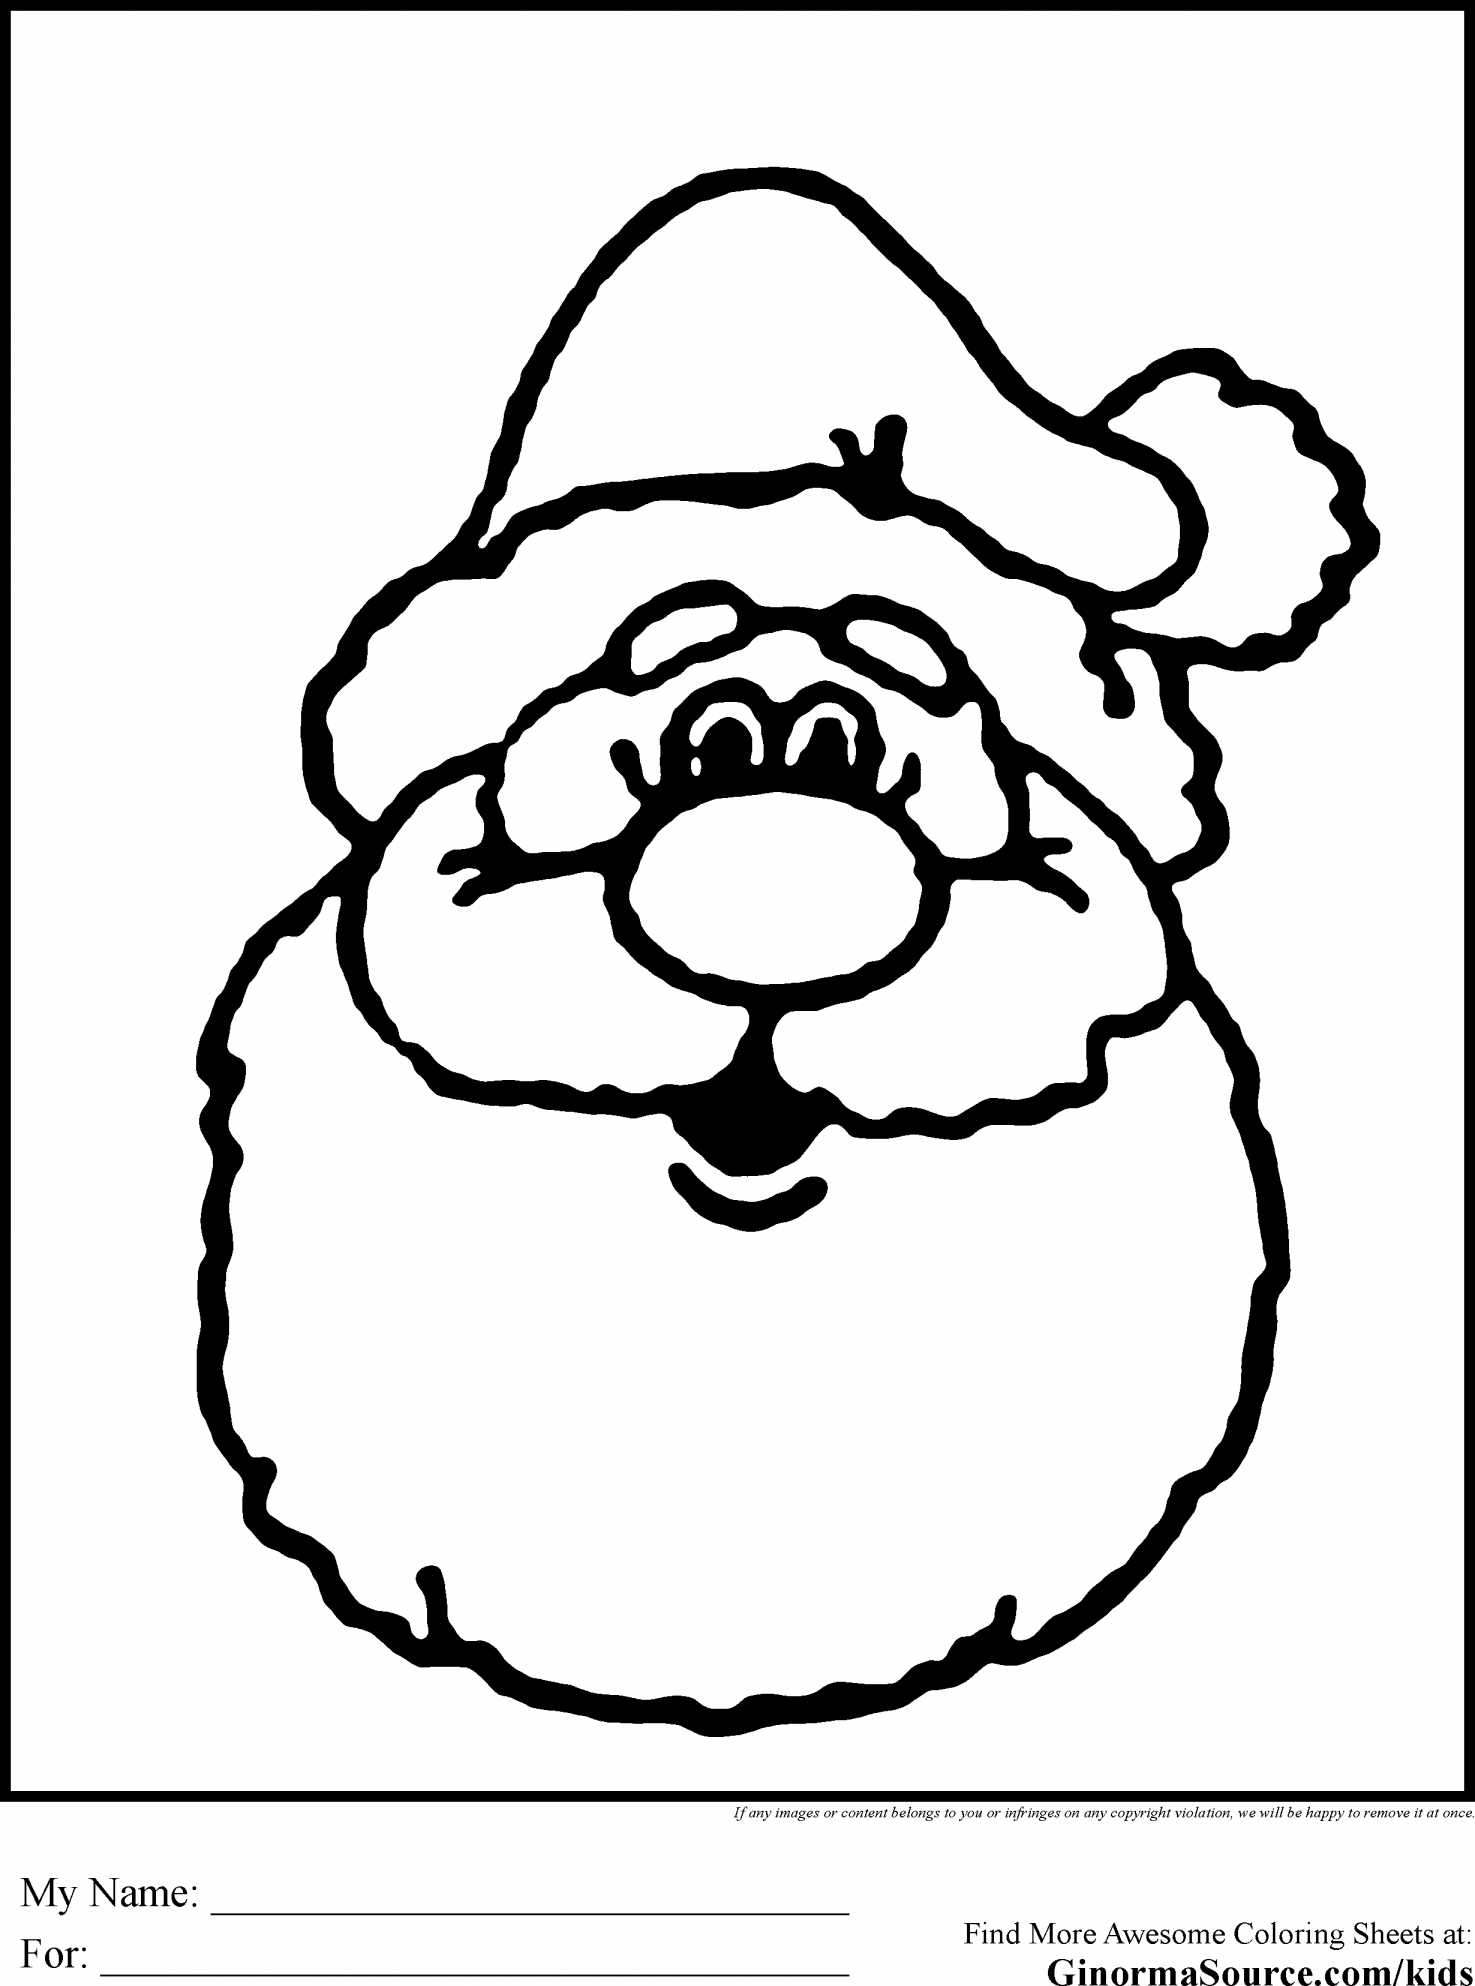 Santa Claus Christmas Coloring Pages For Kids With Reindeer Free Colouring In